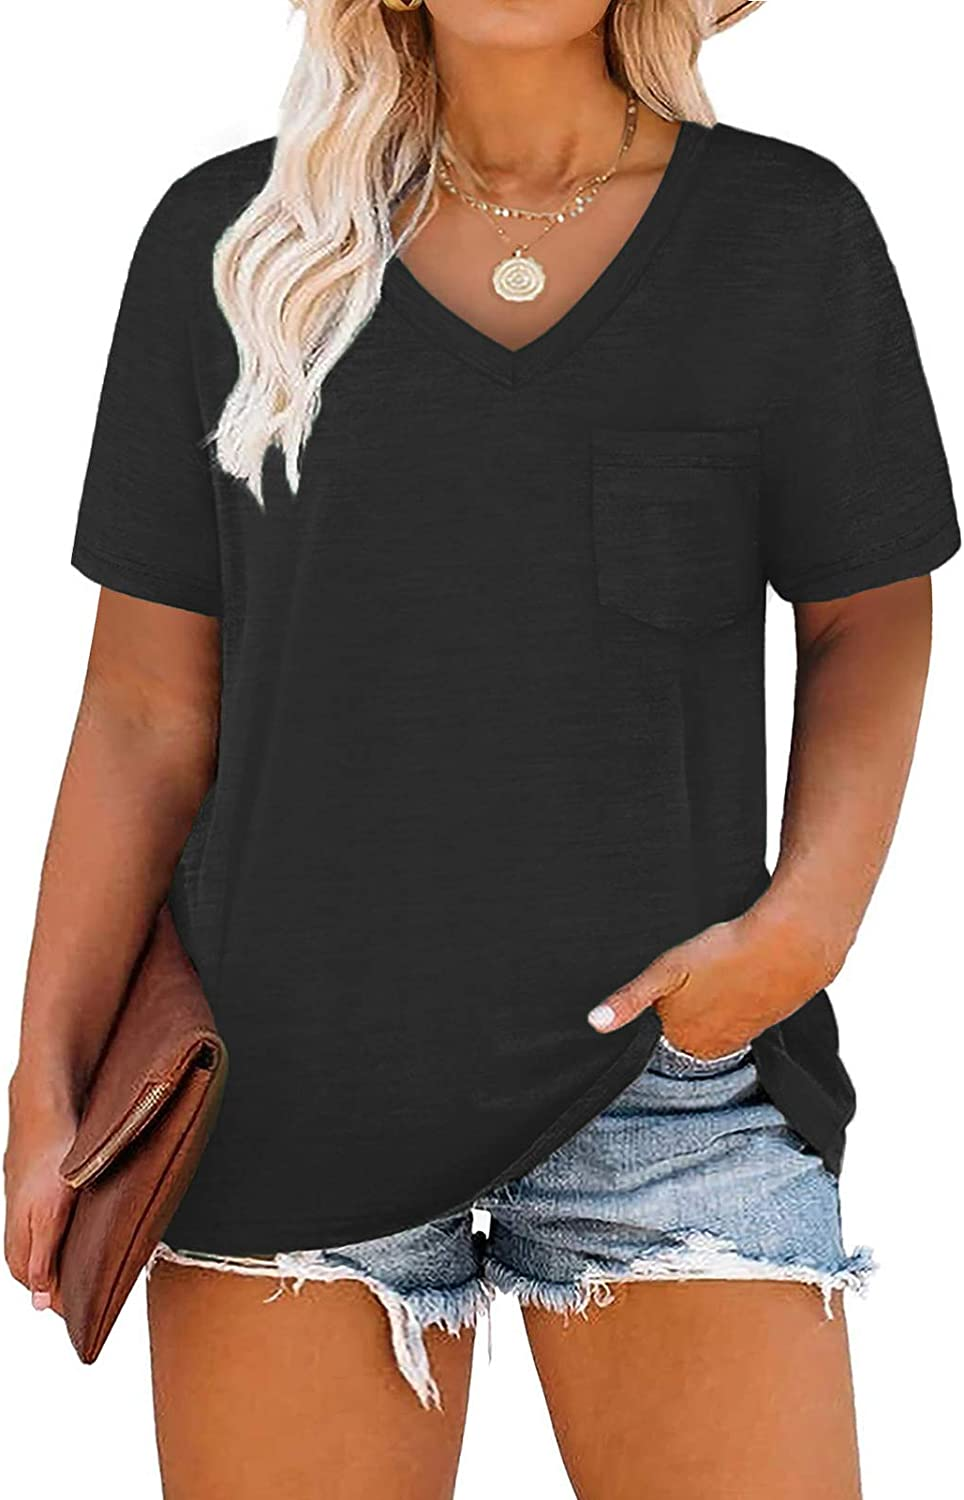 VOGRACE Womens Plus-Size Tops Summer V Neck Shirts Short Sleeve Tees with Pocket